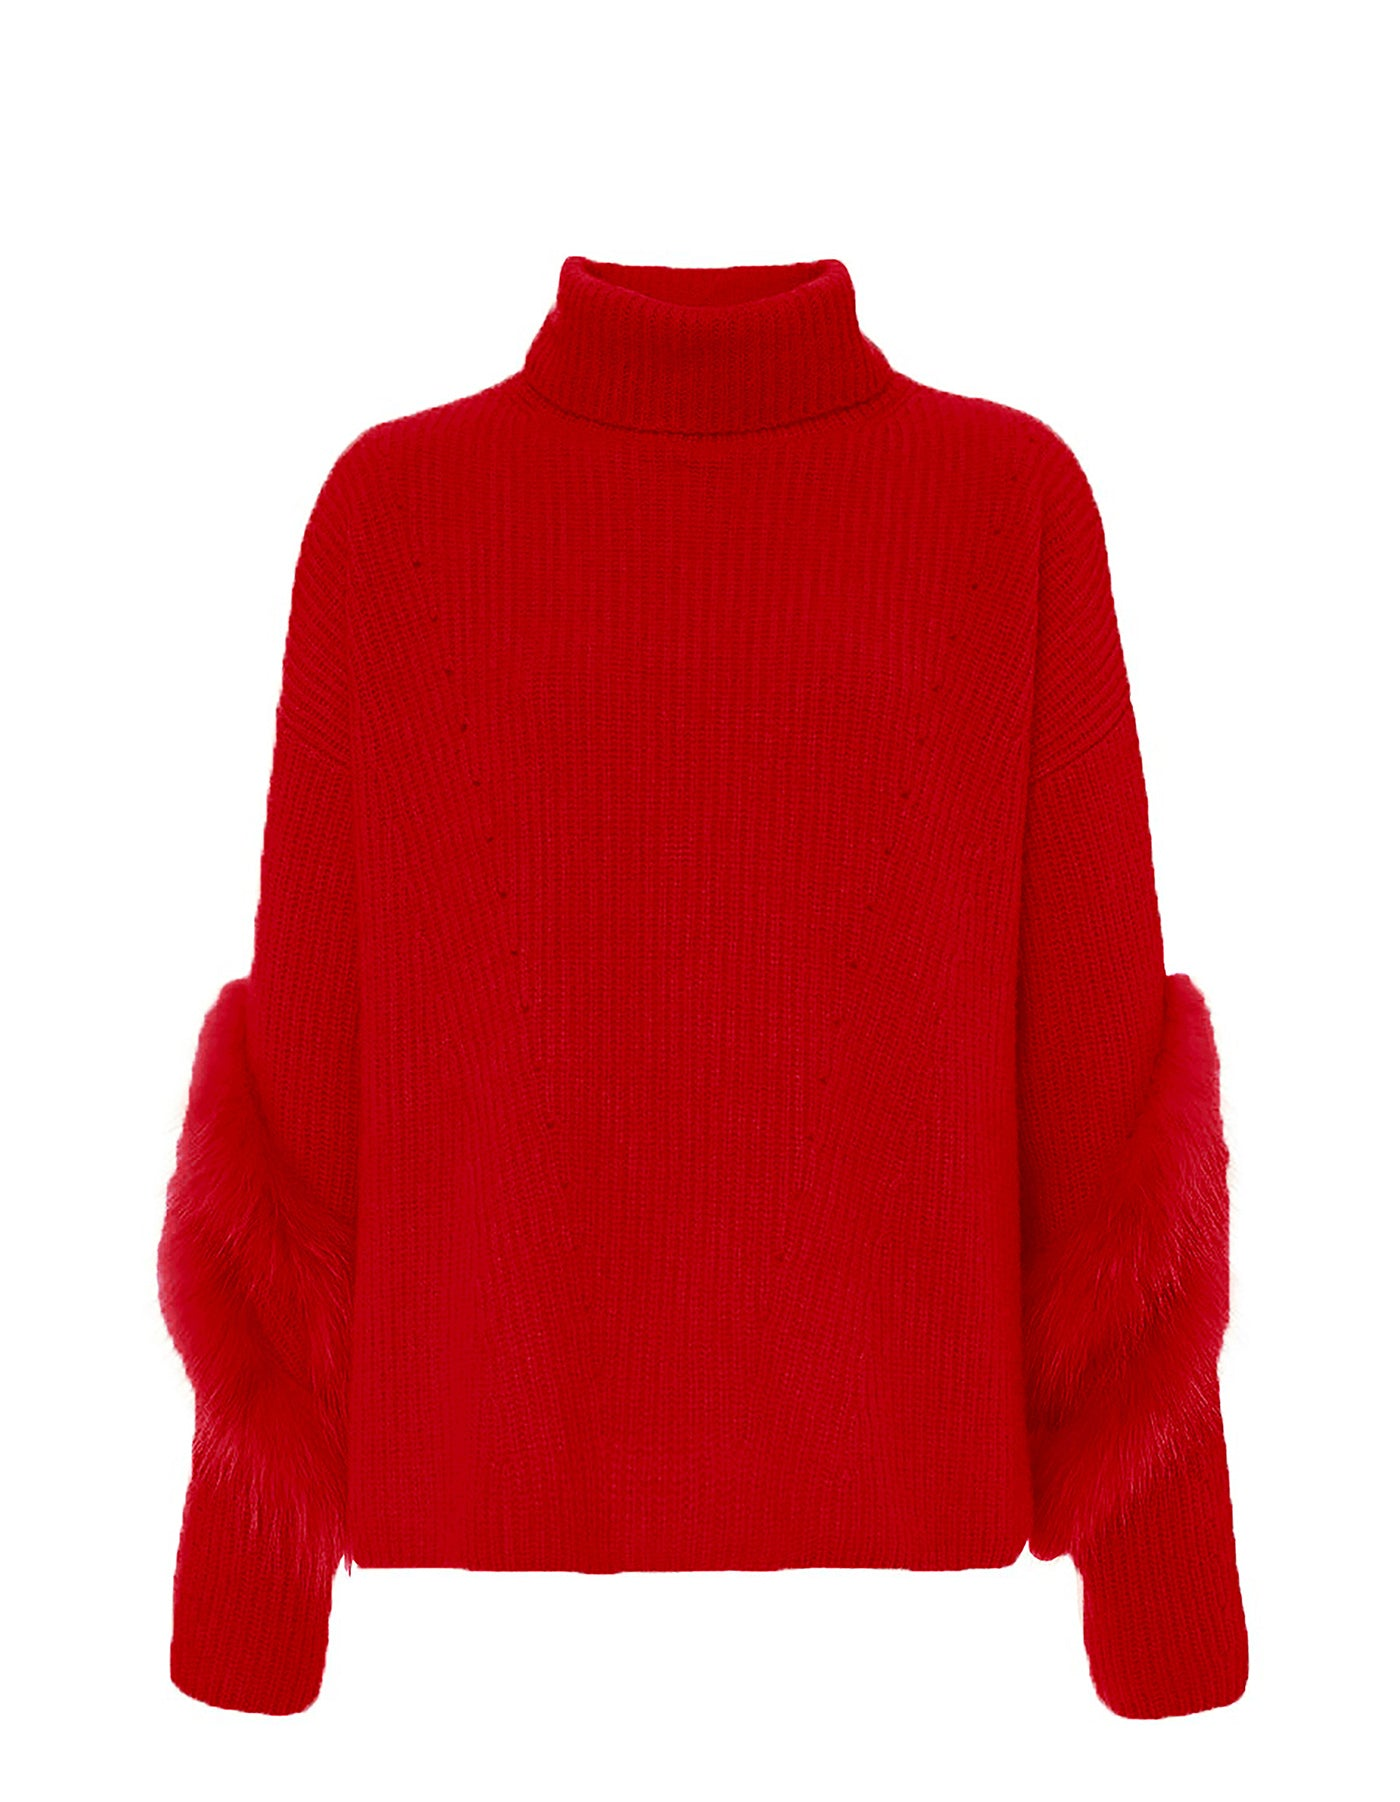 Product 4884772913238, CASHMERE FUR TURTLENECK